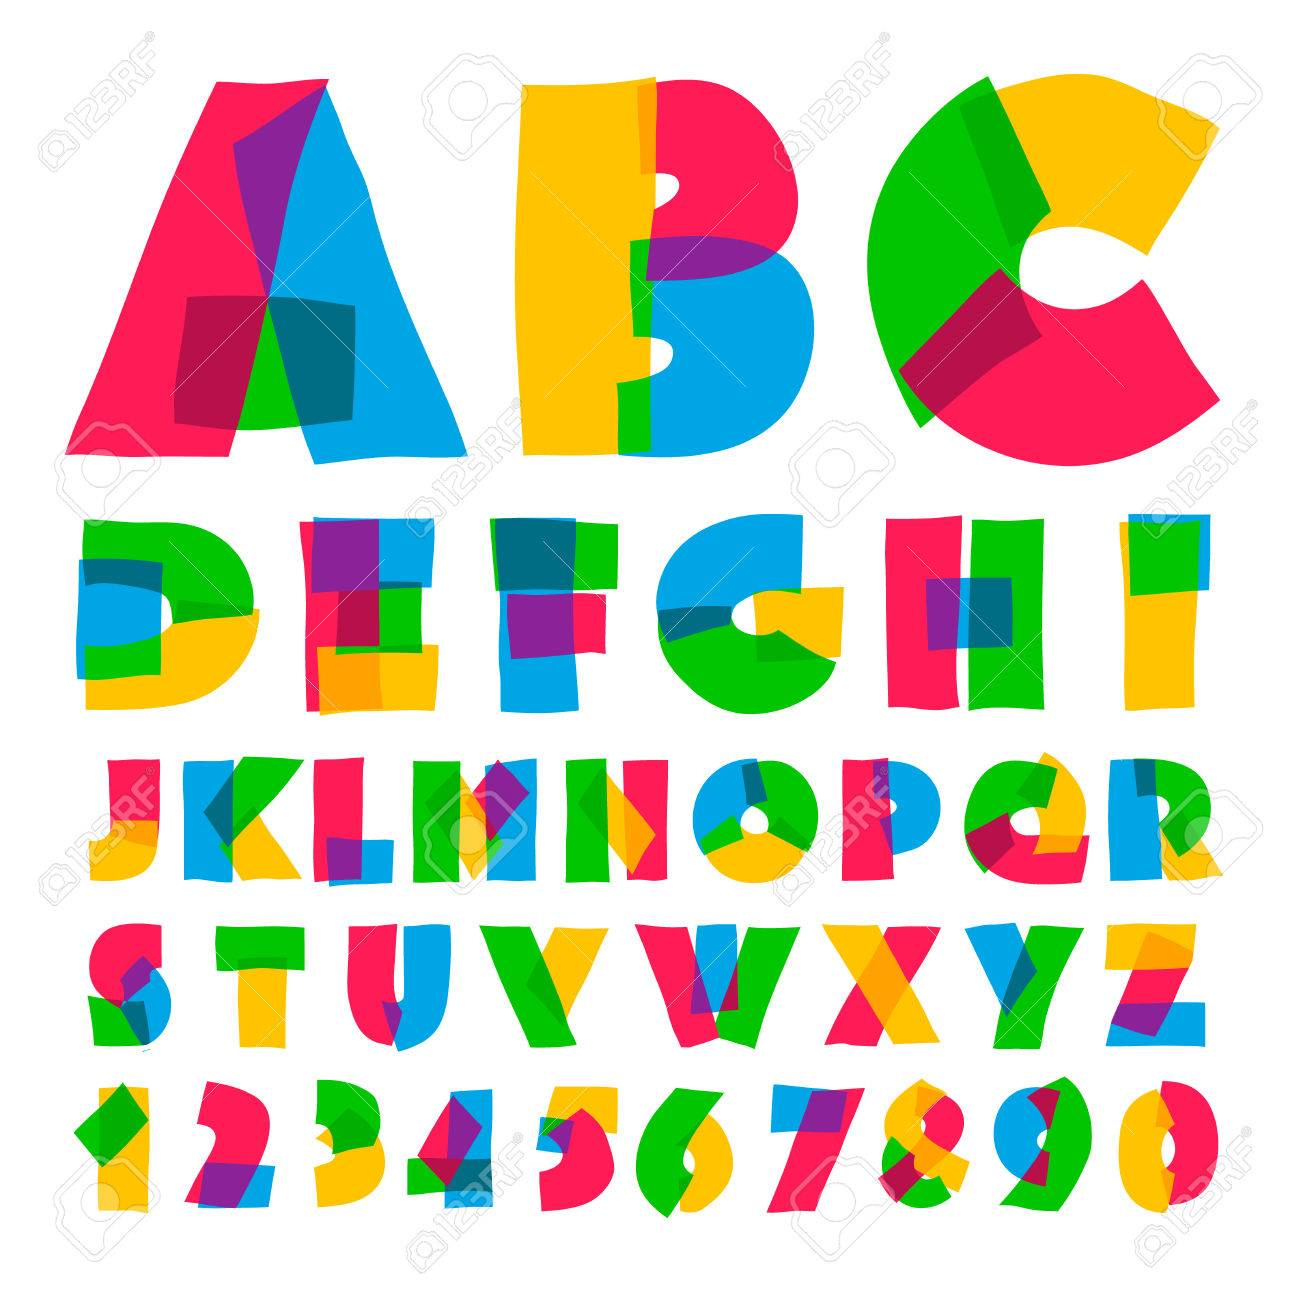 Colorful Kids Alphabet And Numbers, Vector Illustration. Royalty ...